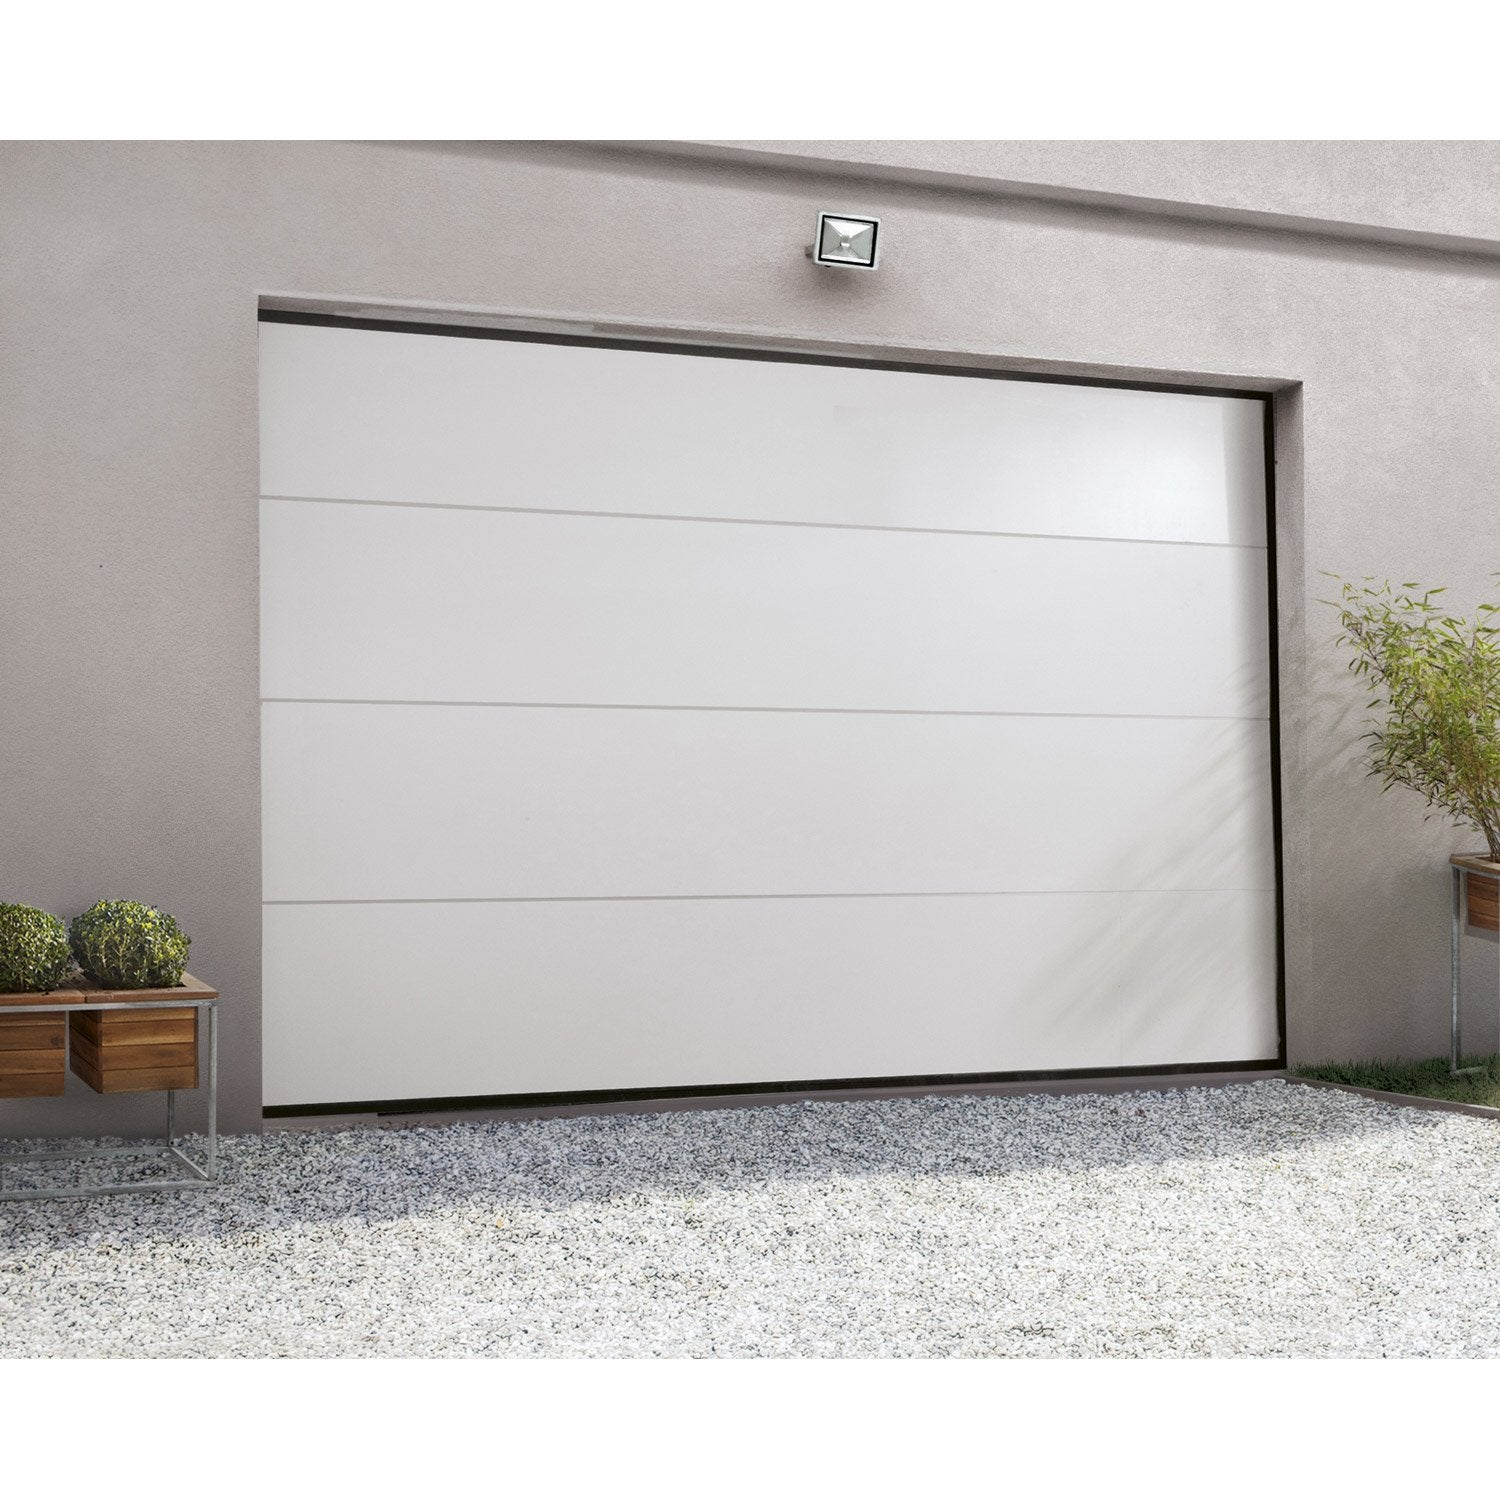 Porte de garage sectionnelle motoris e artens essentiel h - Leroy merlin porte interieur ...